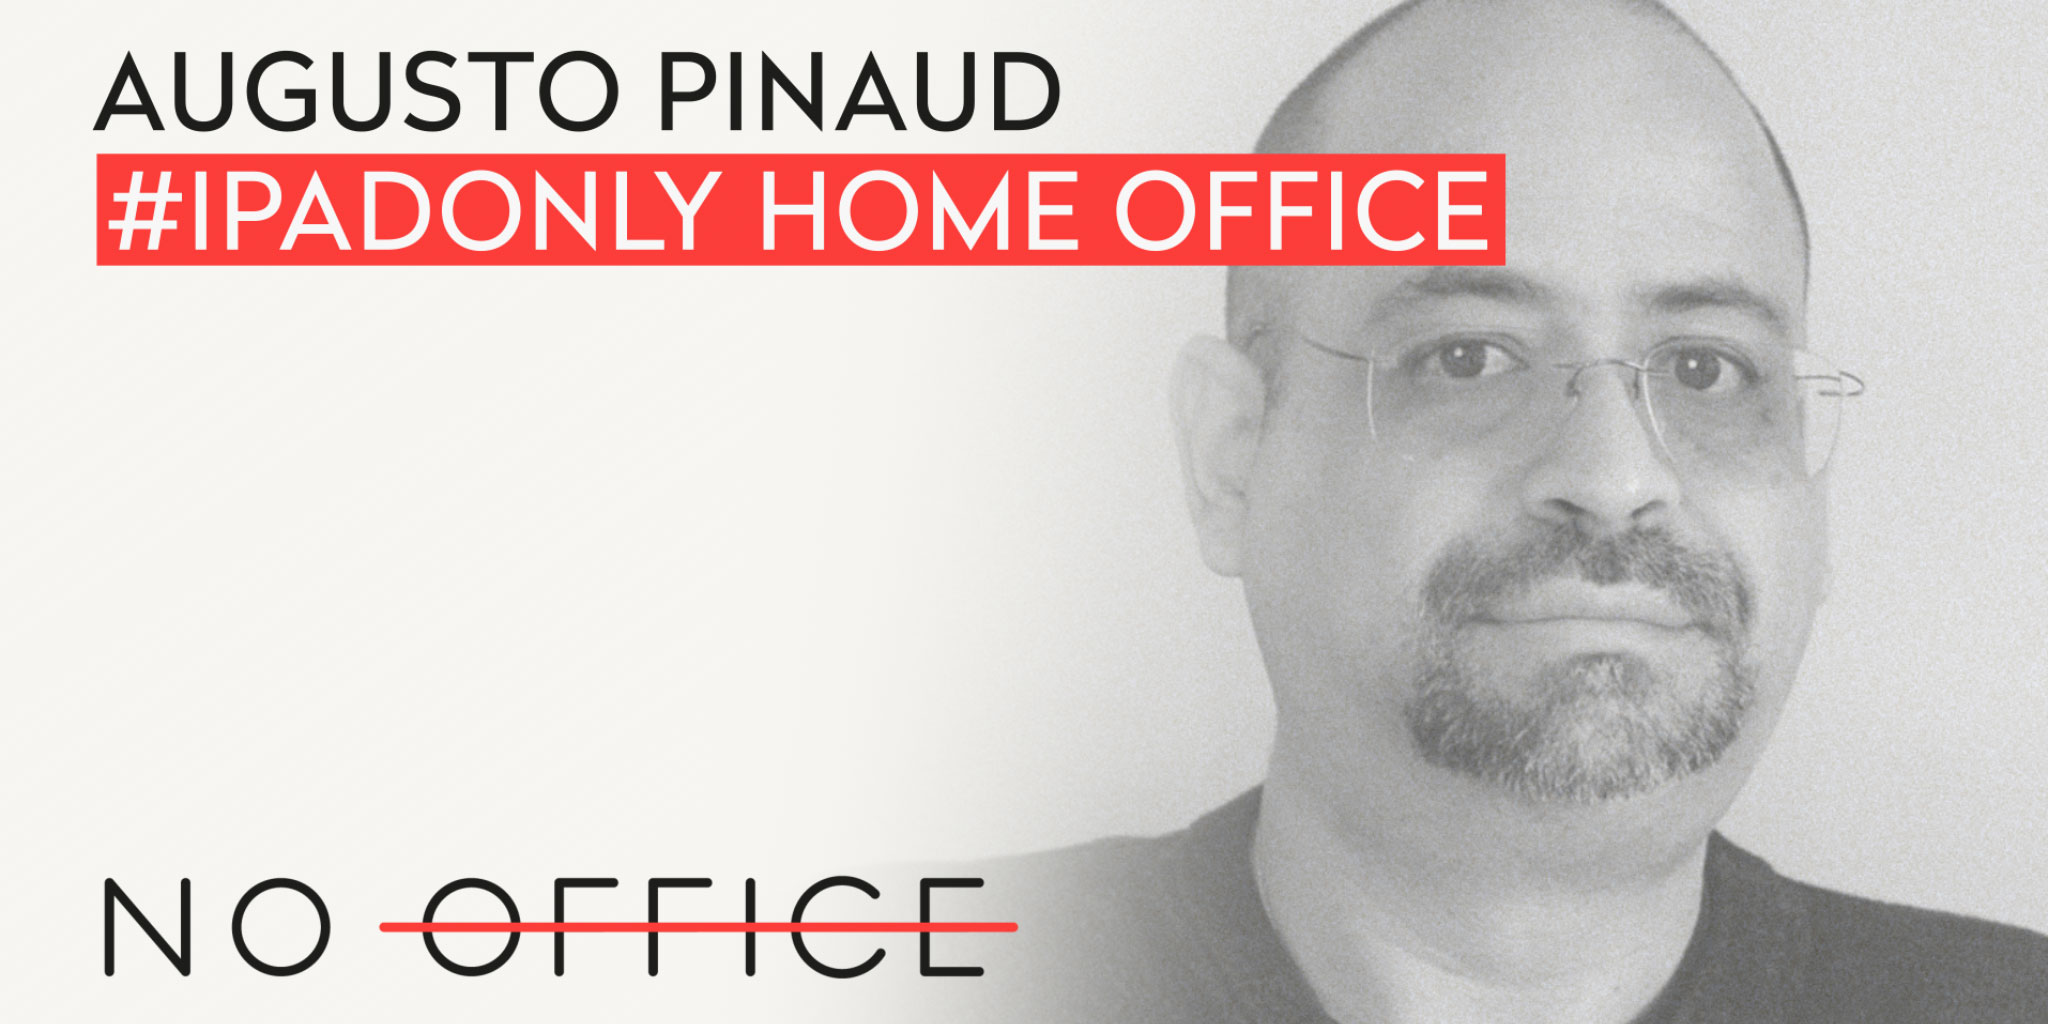 The iPadOnly Home Office of Augusto Pinaud